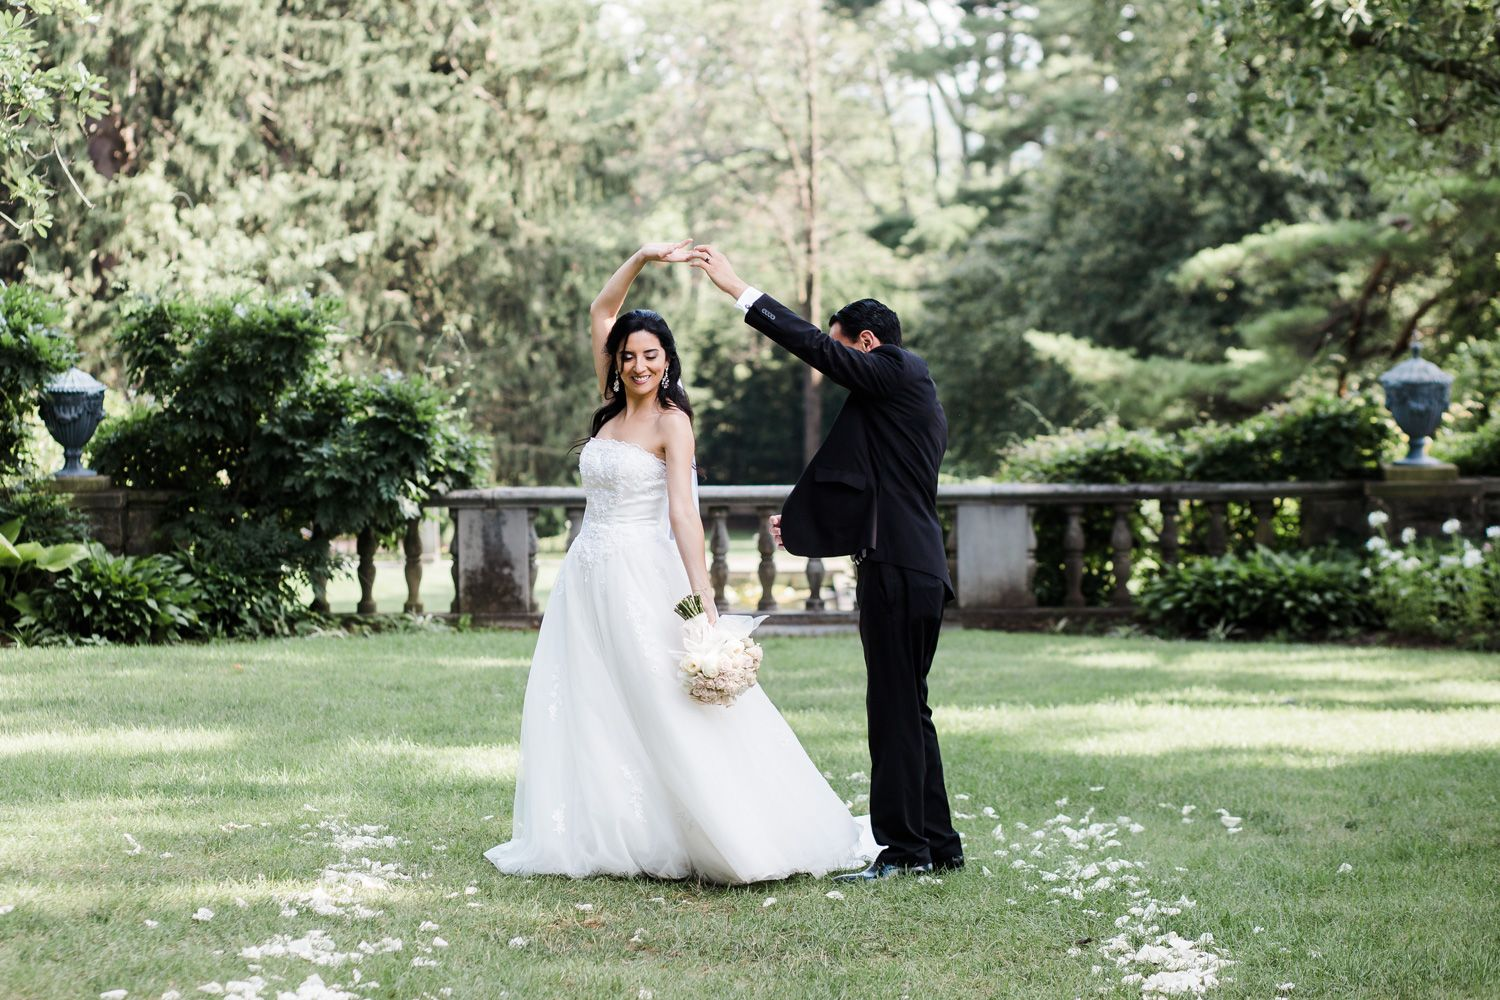 Bride and groom dance with white rose petals on the ground